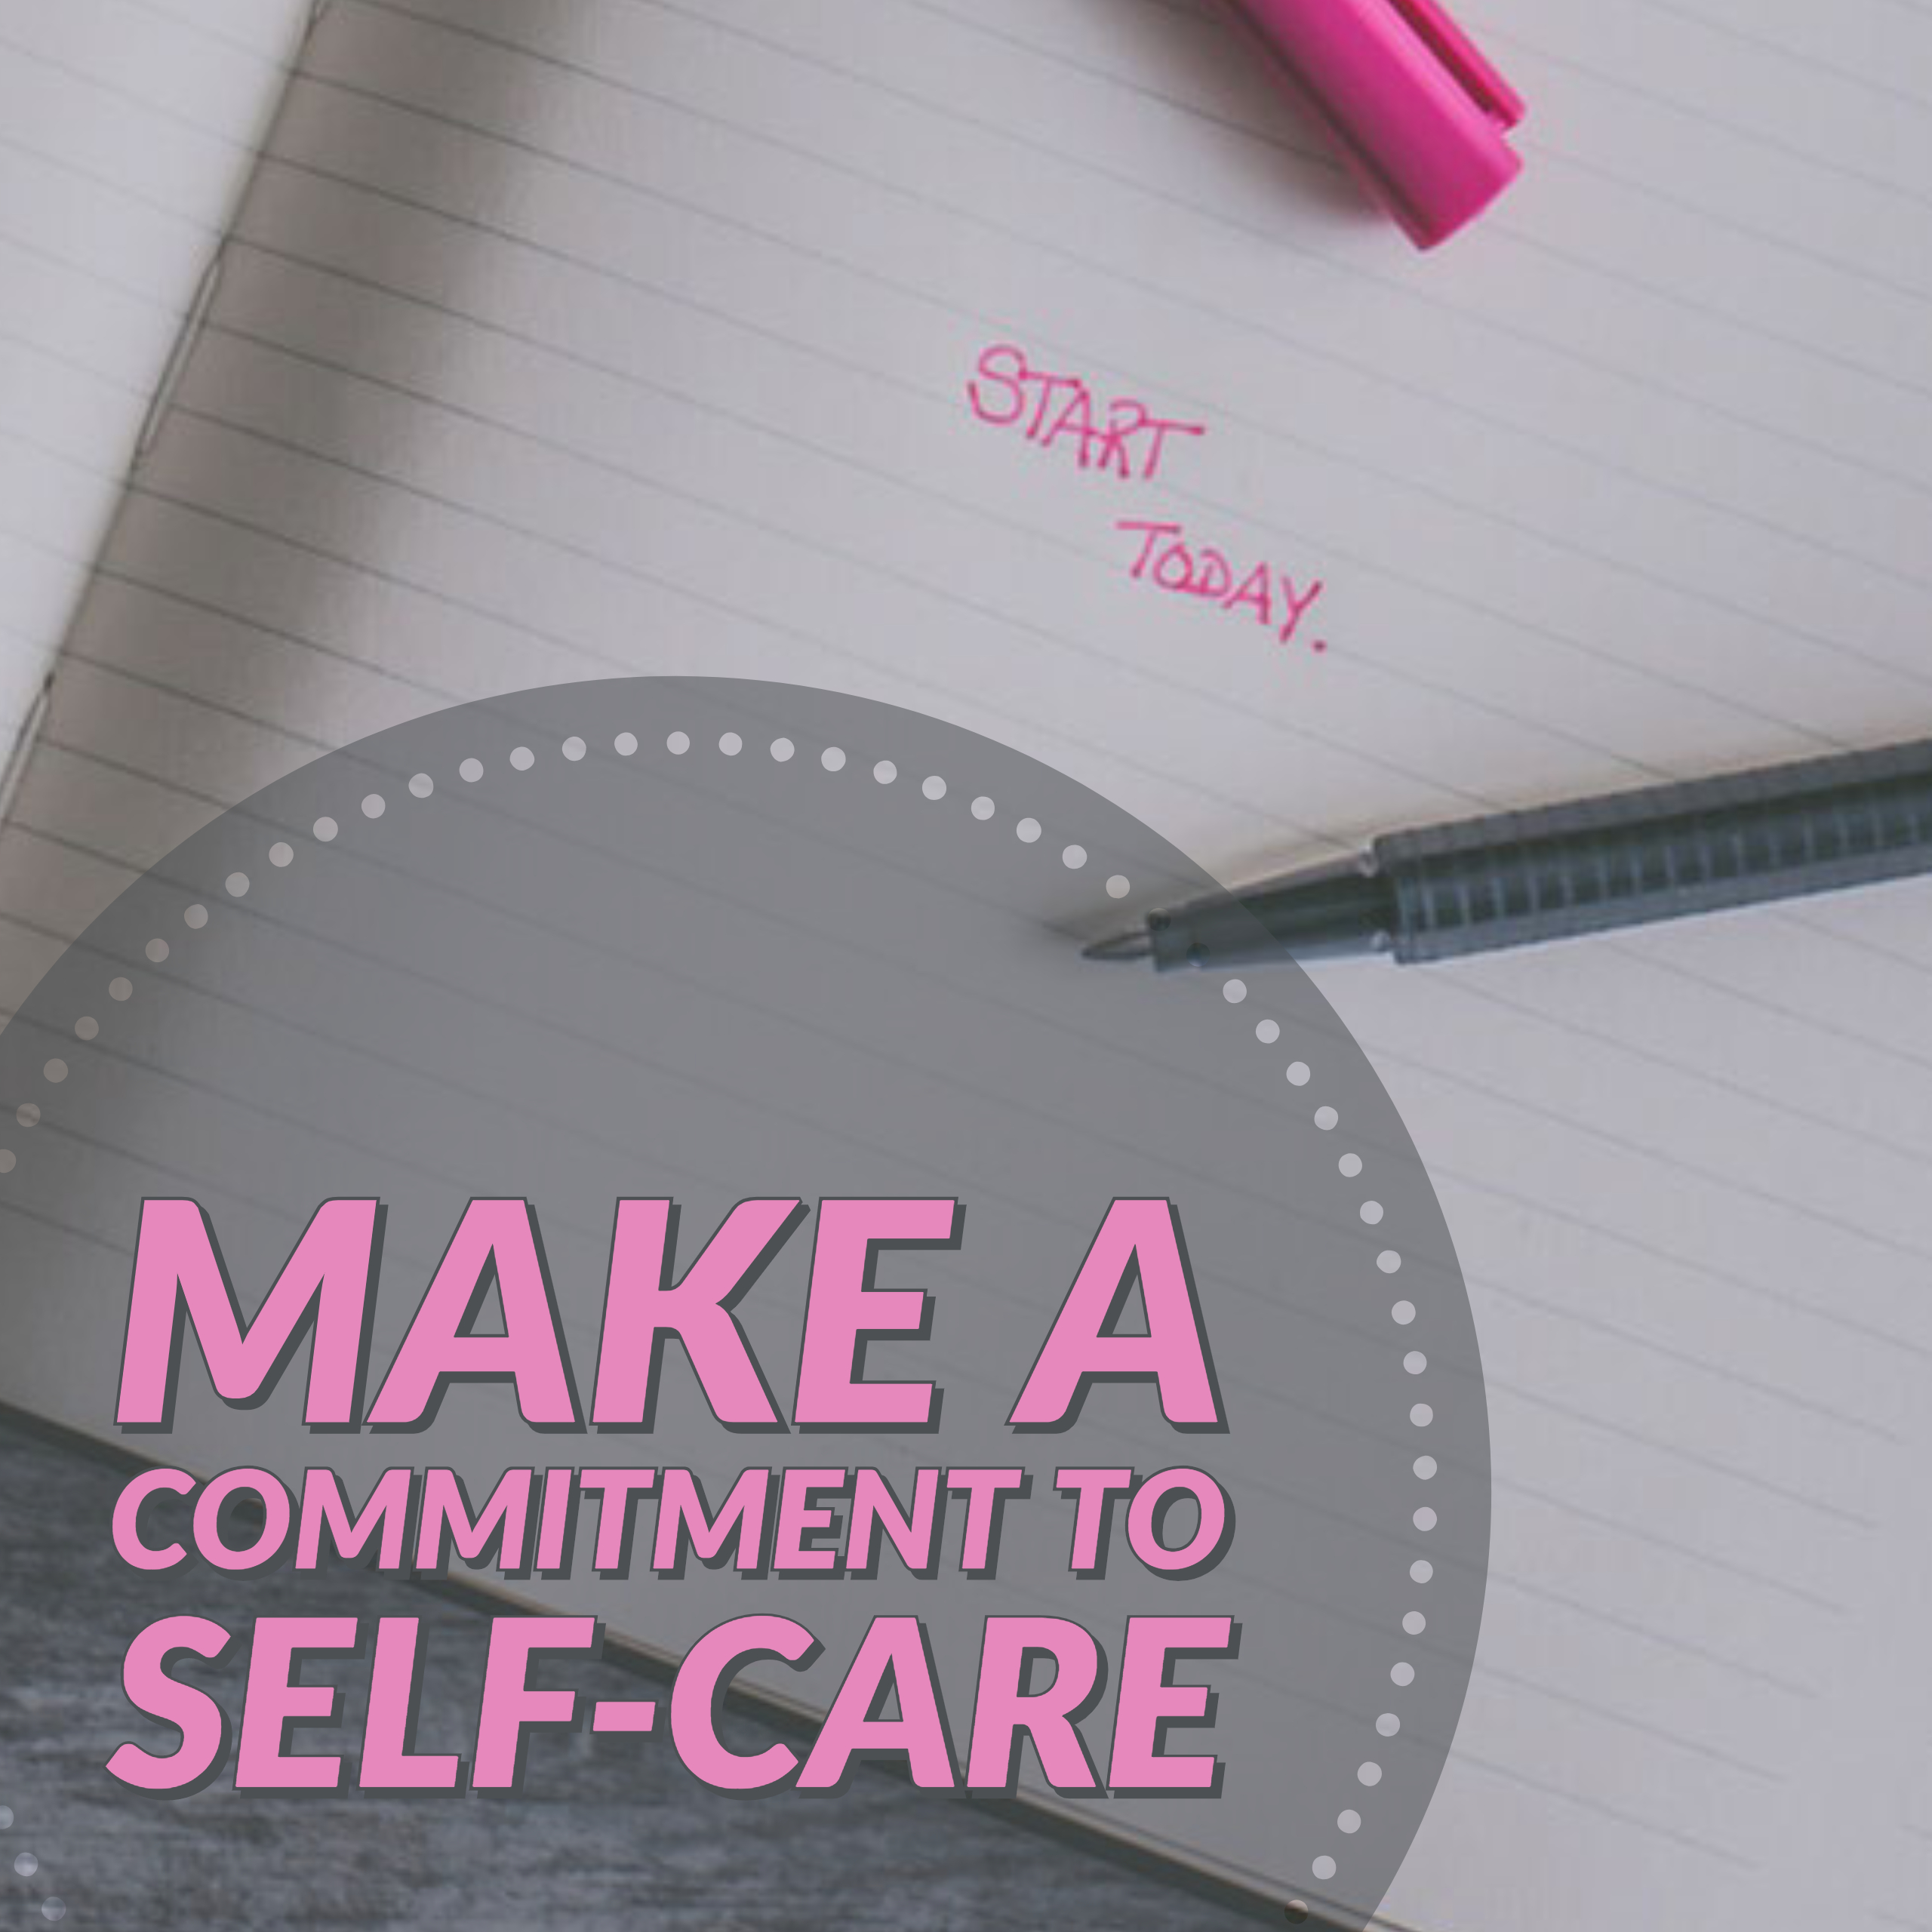 Self-Care and Co-Care: It's Time to Make a Care-mmitment!